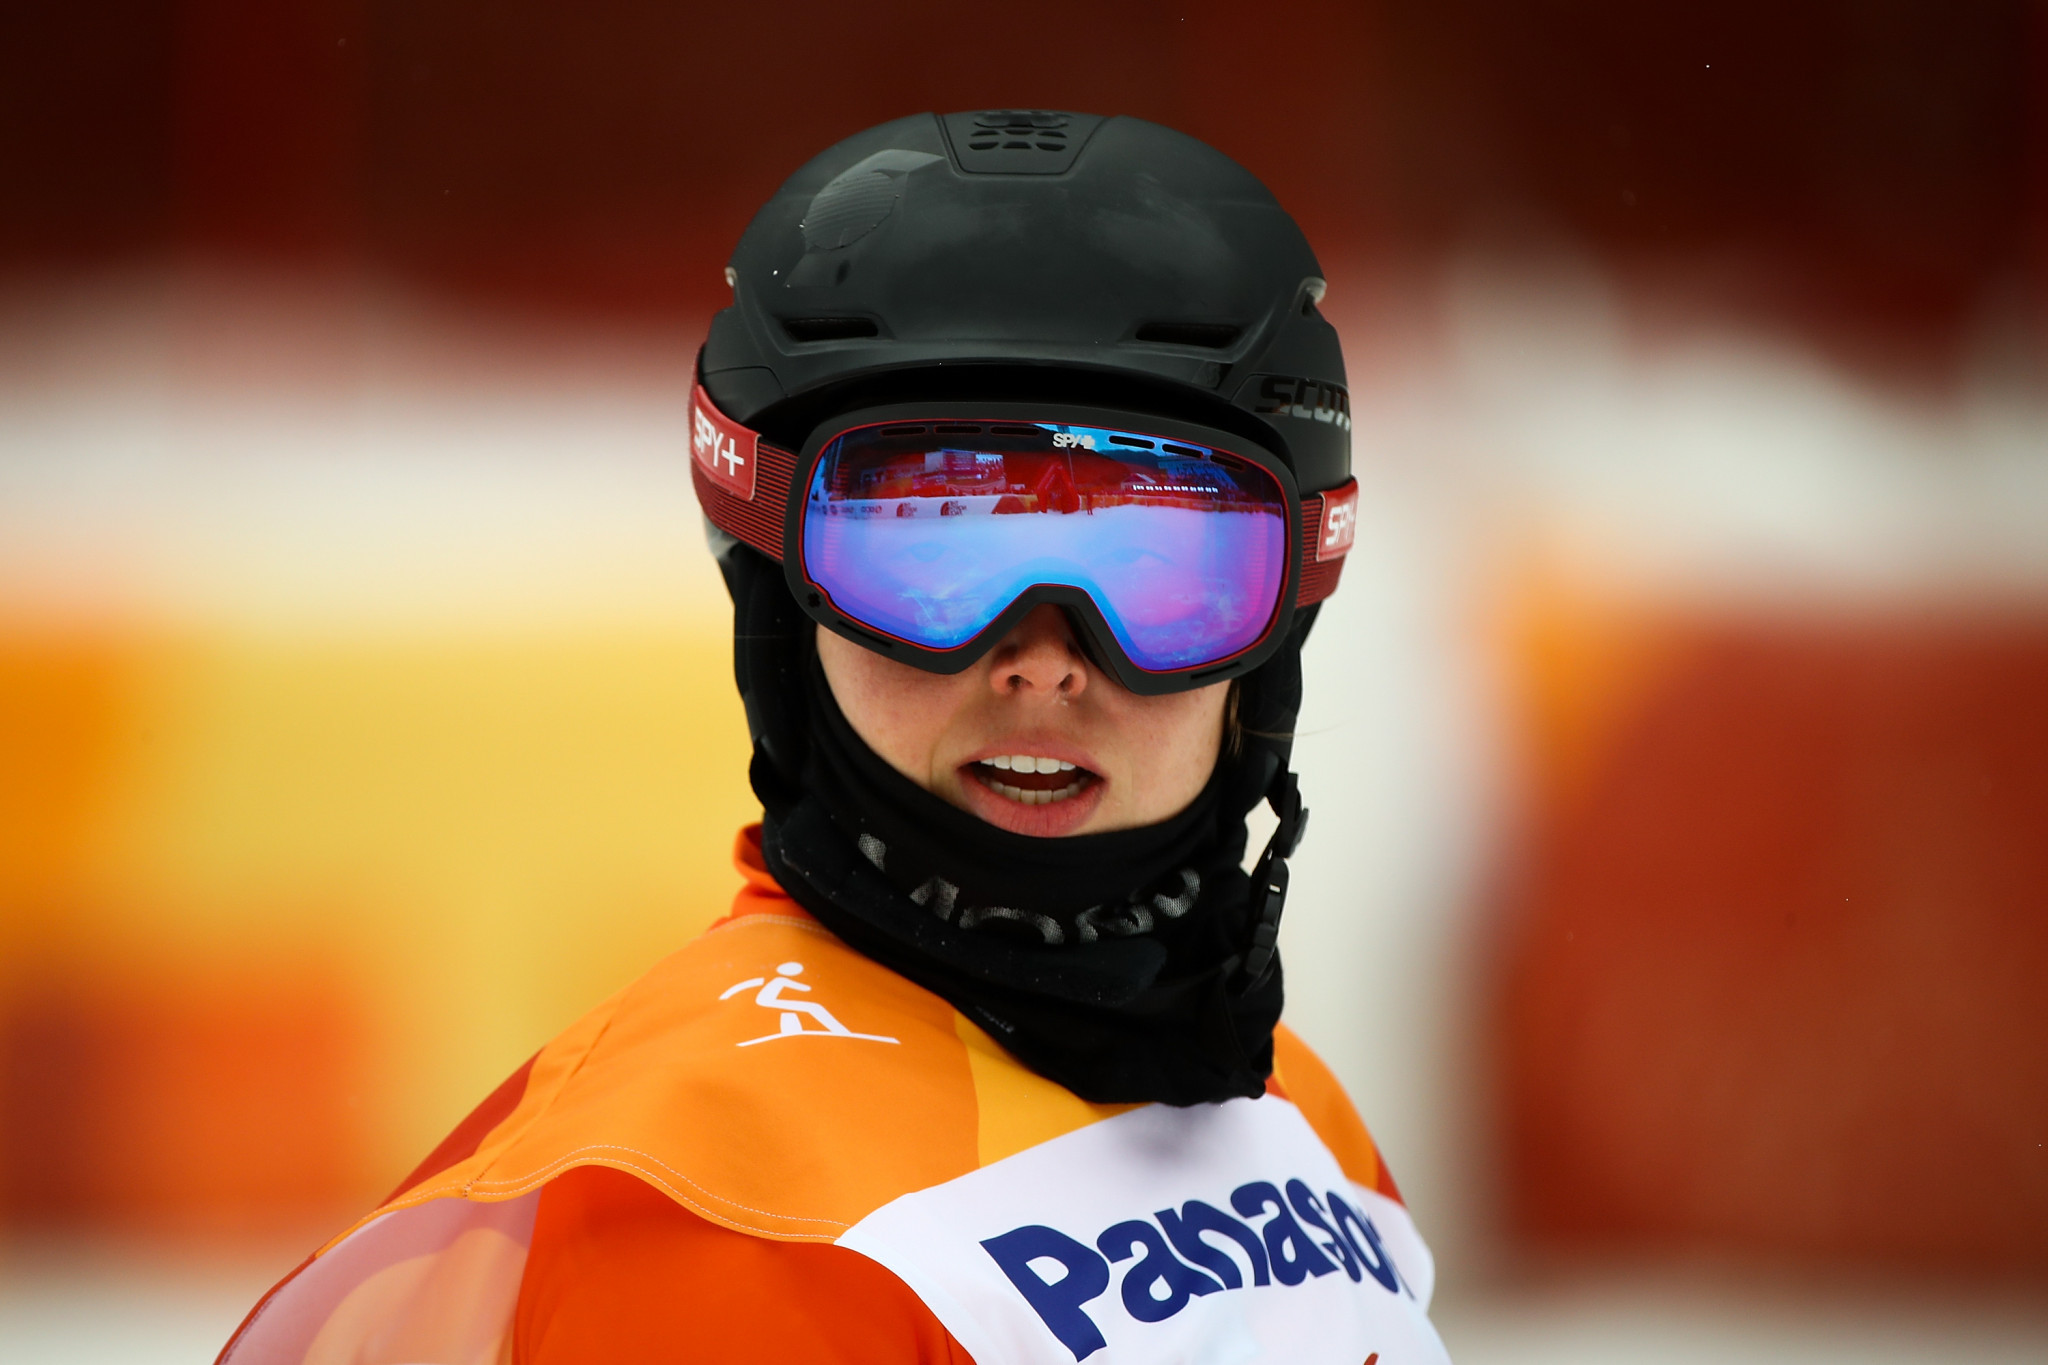 Dutch duo doubles their gold medal haul at home World Para Snowboard World Cup